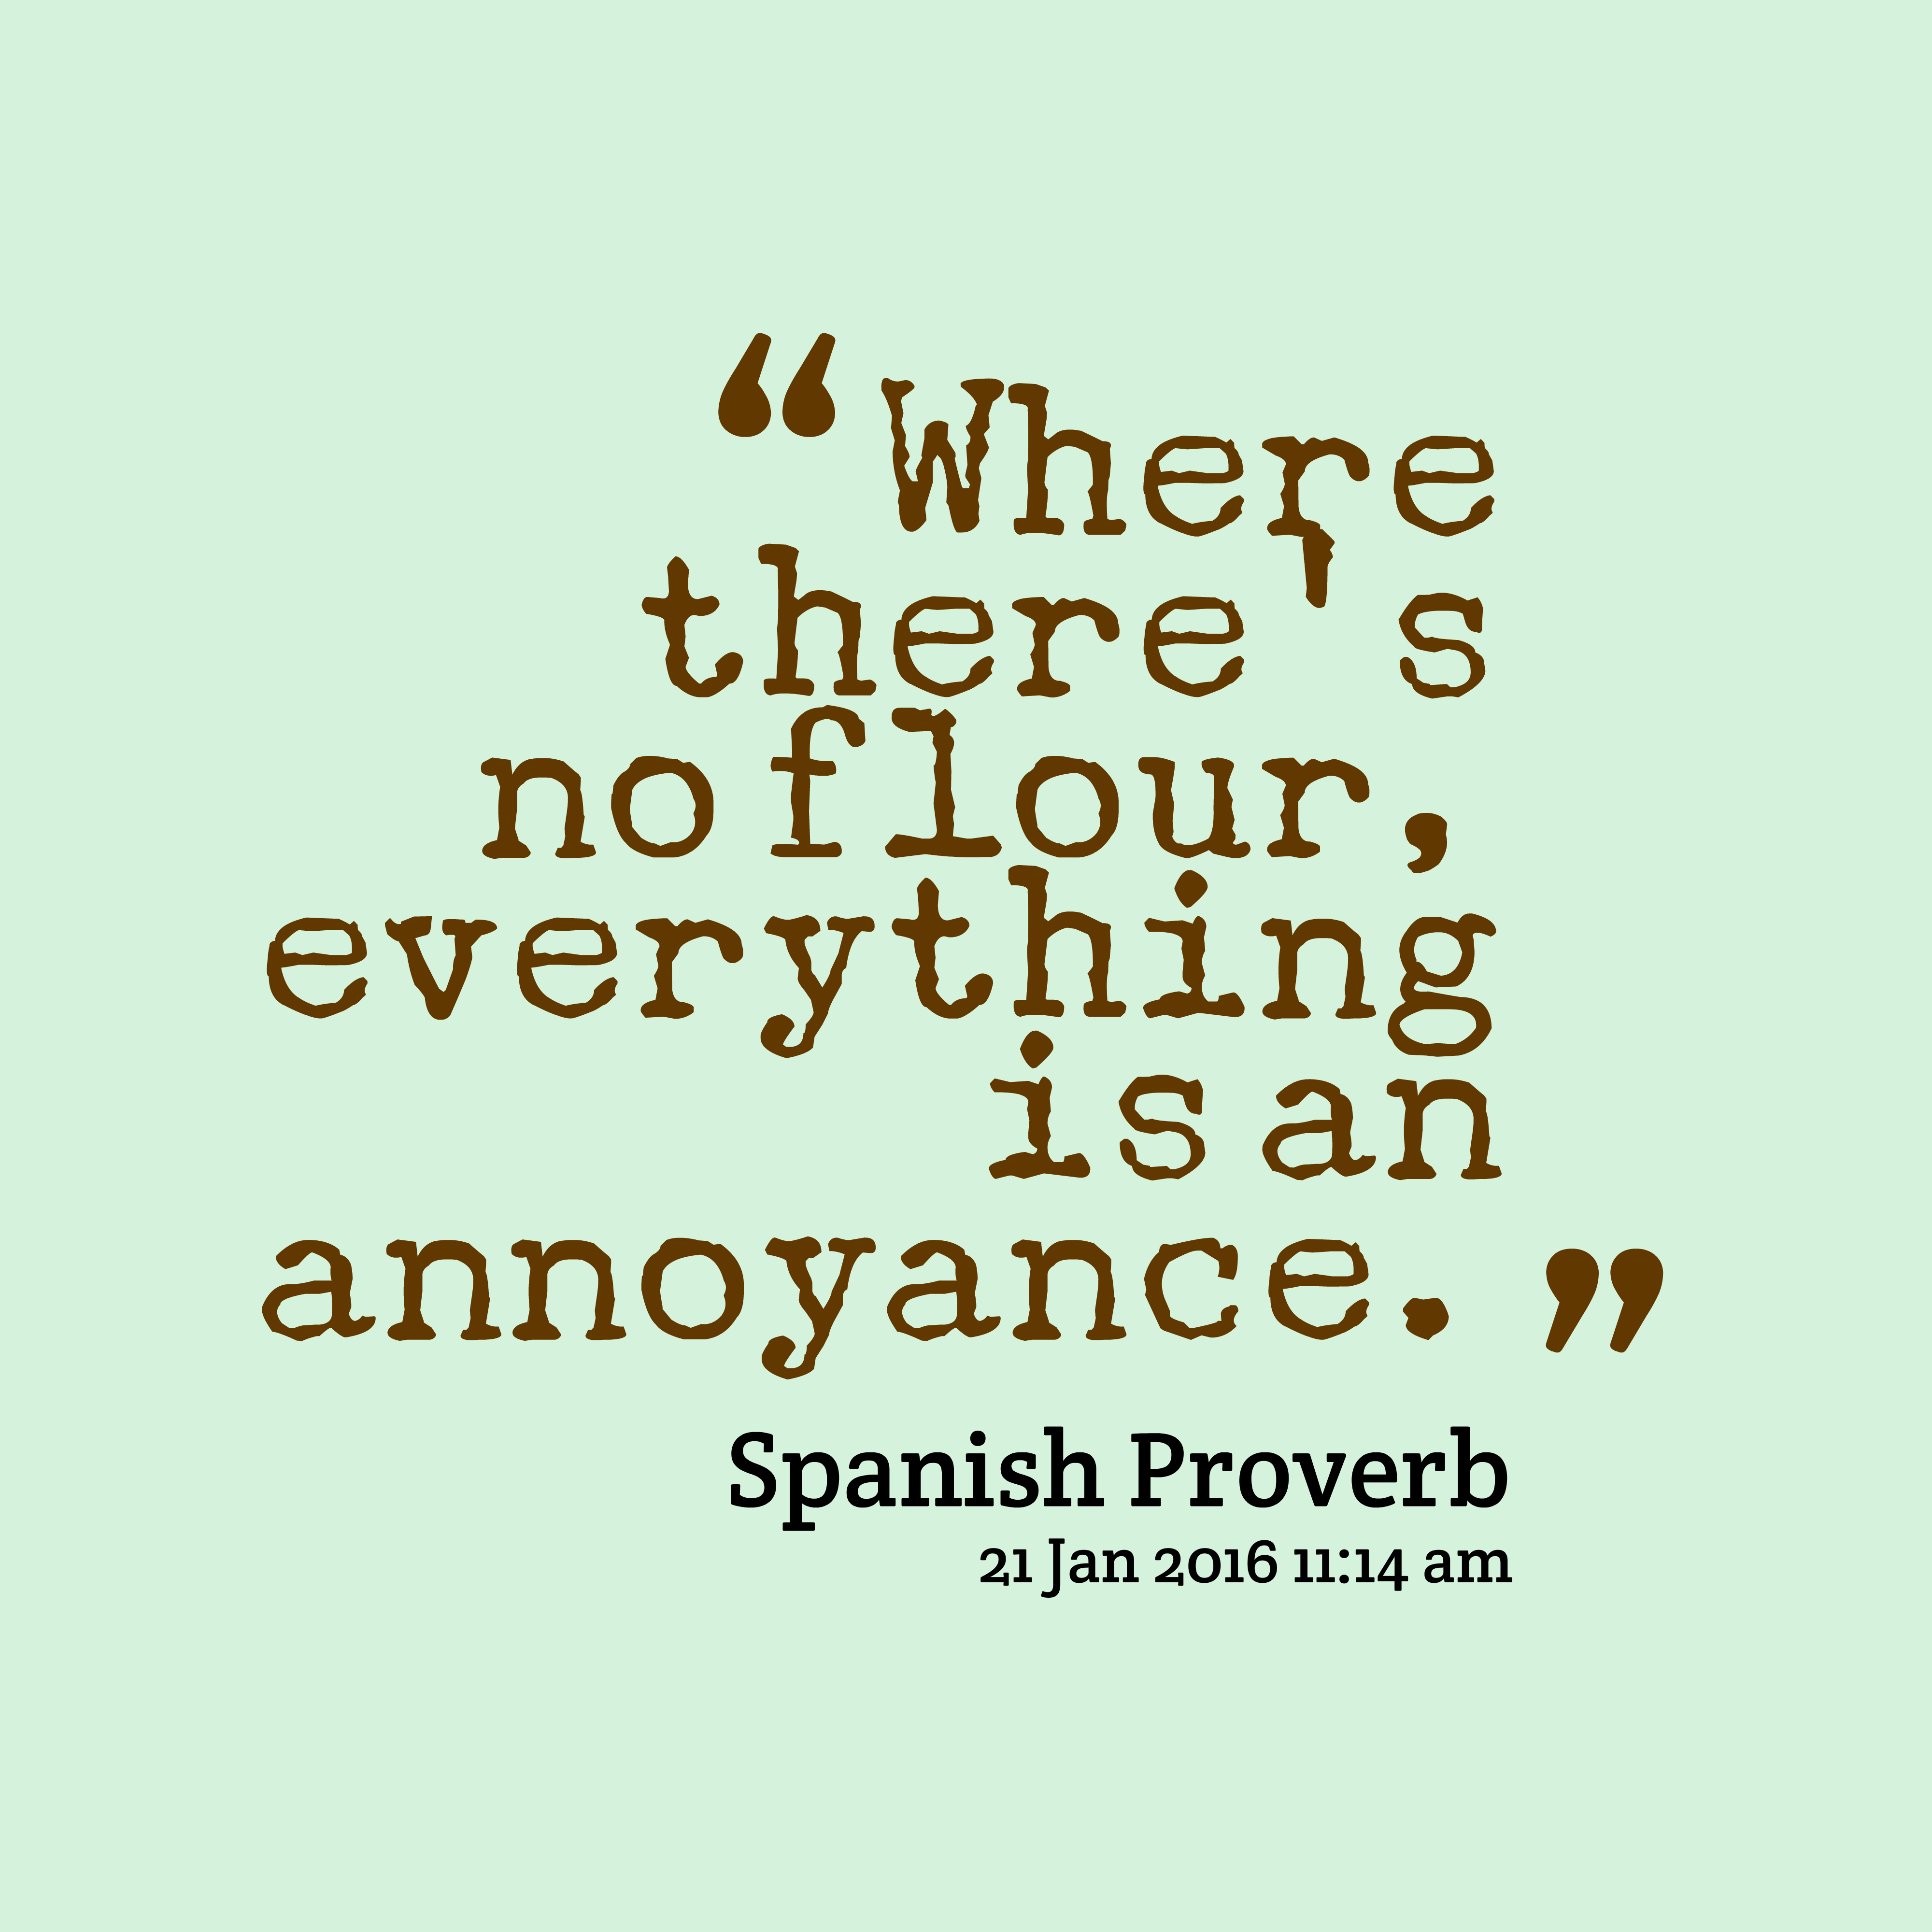 Quotes image of Where there's no flour, everything is an annoyance.